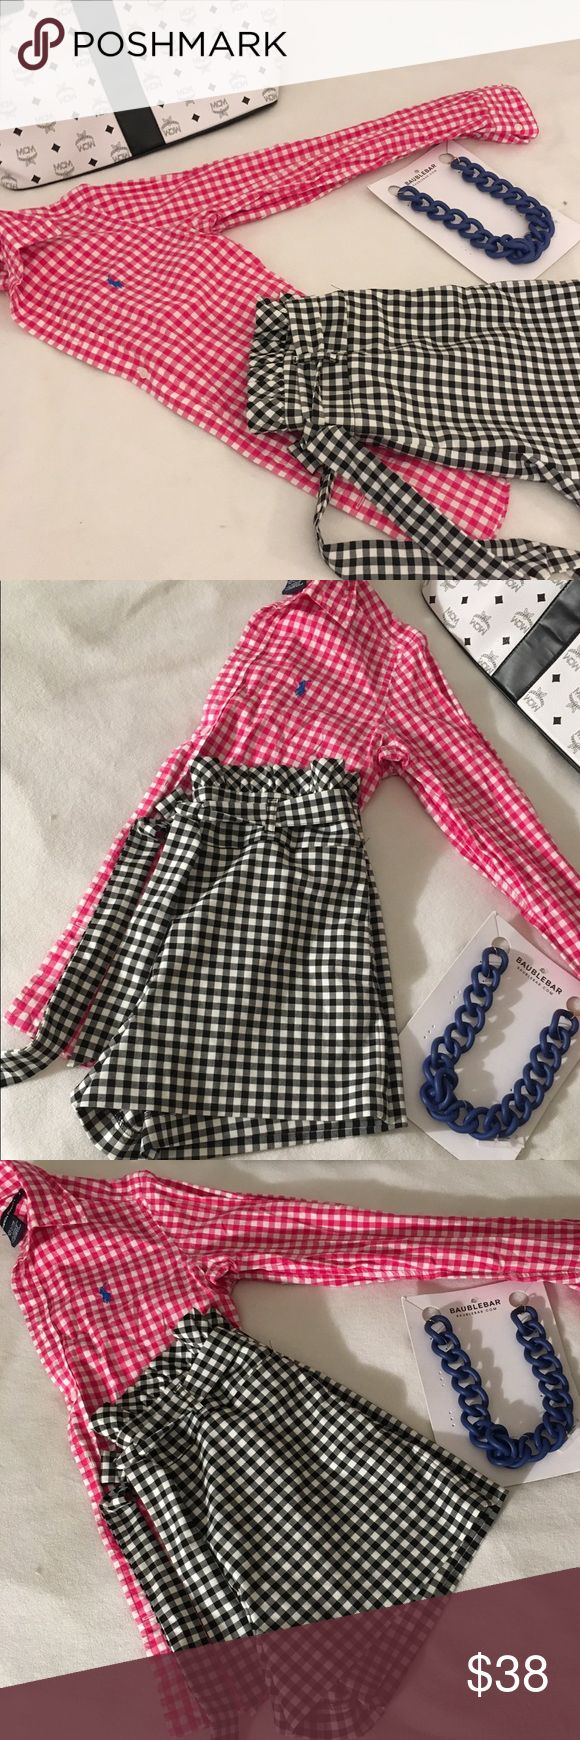 Ralph Lauren Women's Pink Gingham Oxford Shirt 4 Super cute Ralph Lauren Women's Pink Gingham Oxford Shirt  with blue Pony in excellent condition. Perfect addition to any preppy and stylish wardrobe Ralph Lauren Tops Button Down Shirts